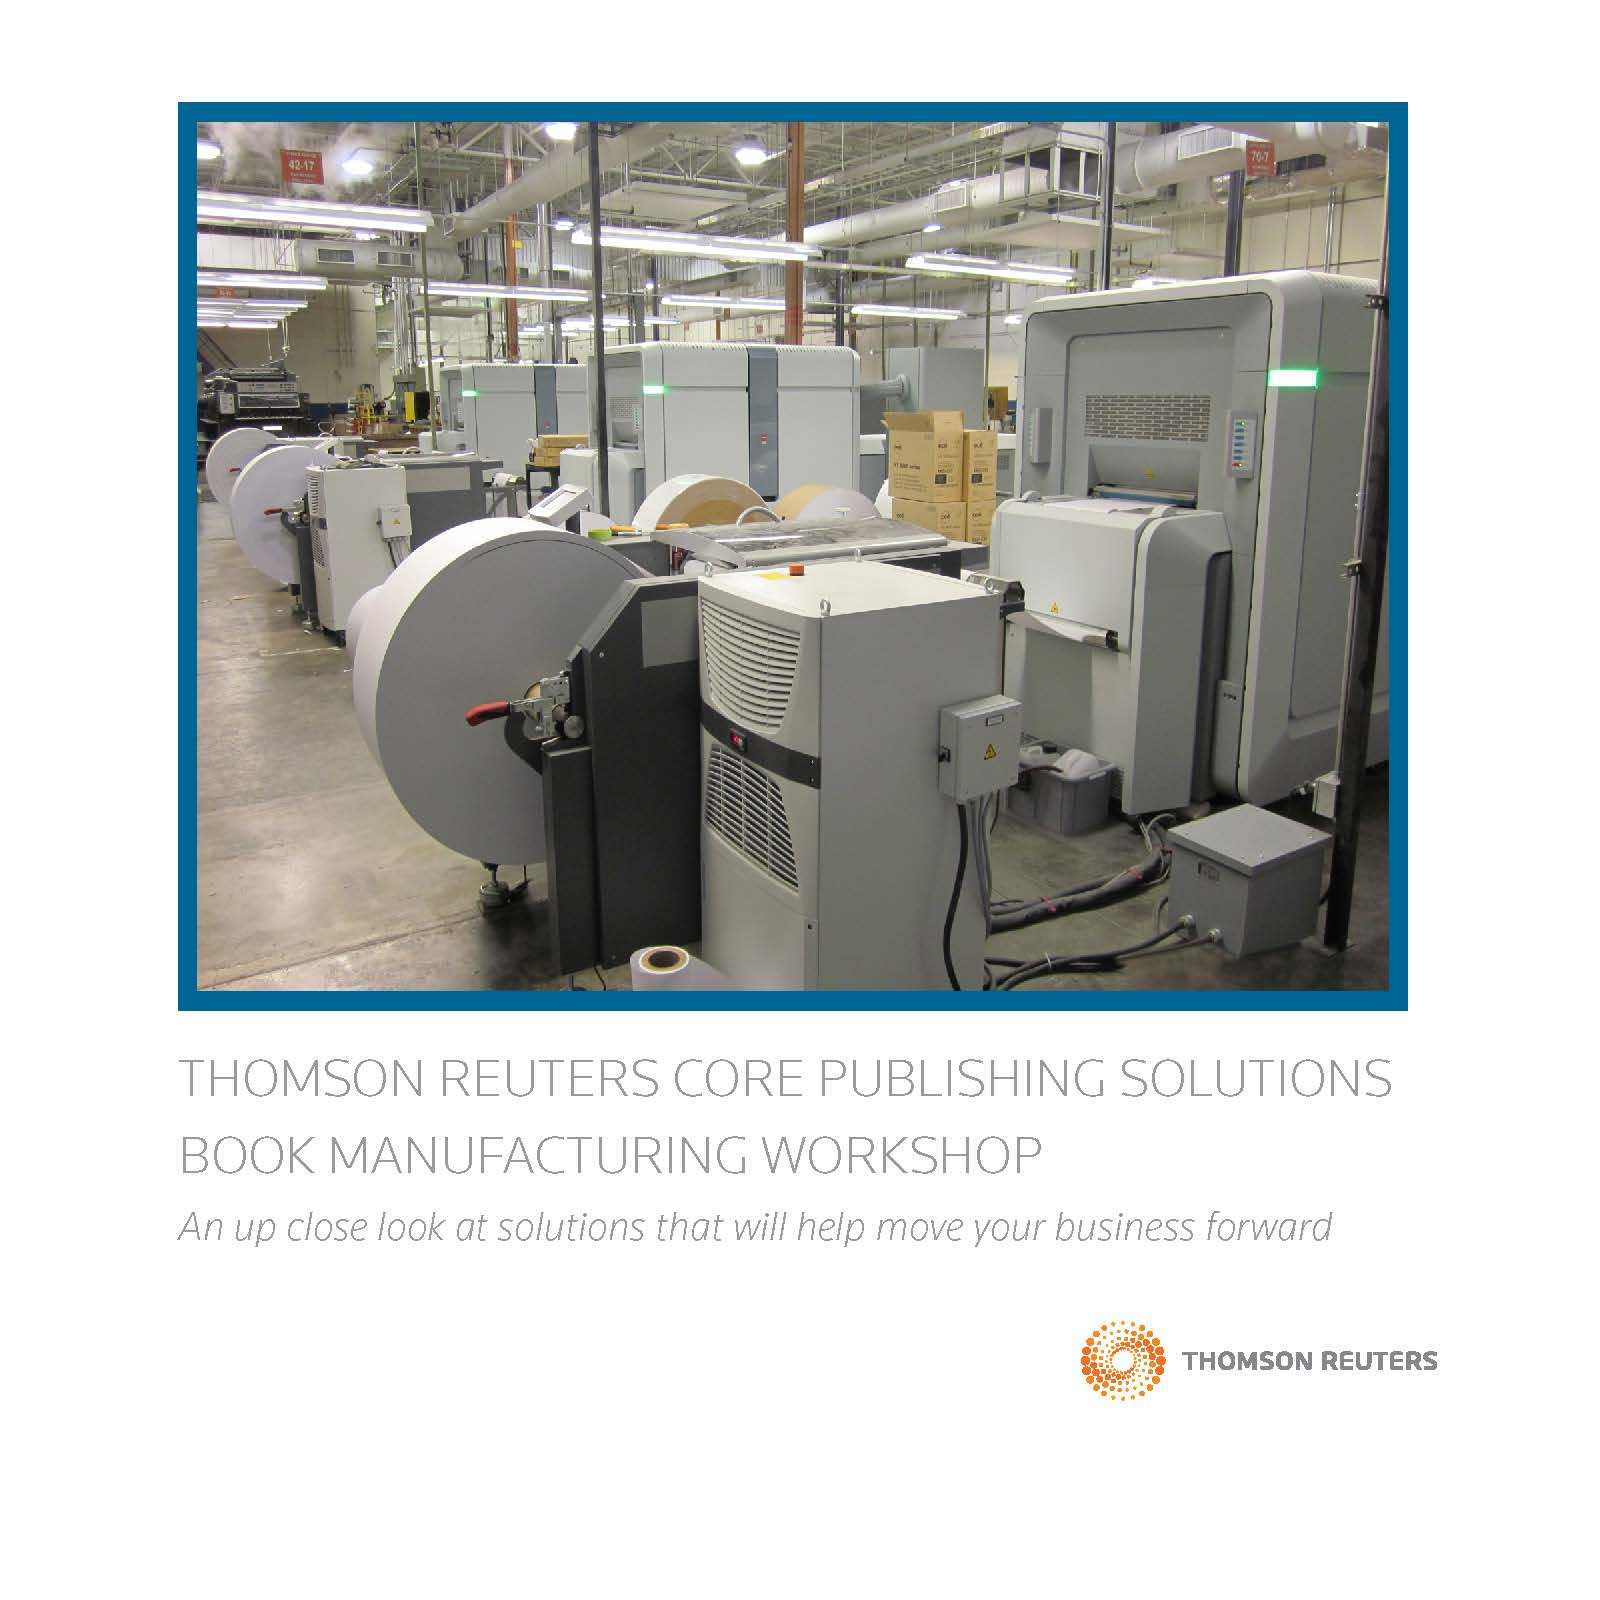 Thomson_Reuters_Core_Publishing_Solutions_Book_Manufacturing_Workshop_Brochure_Page_1